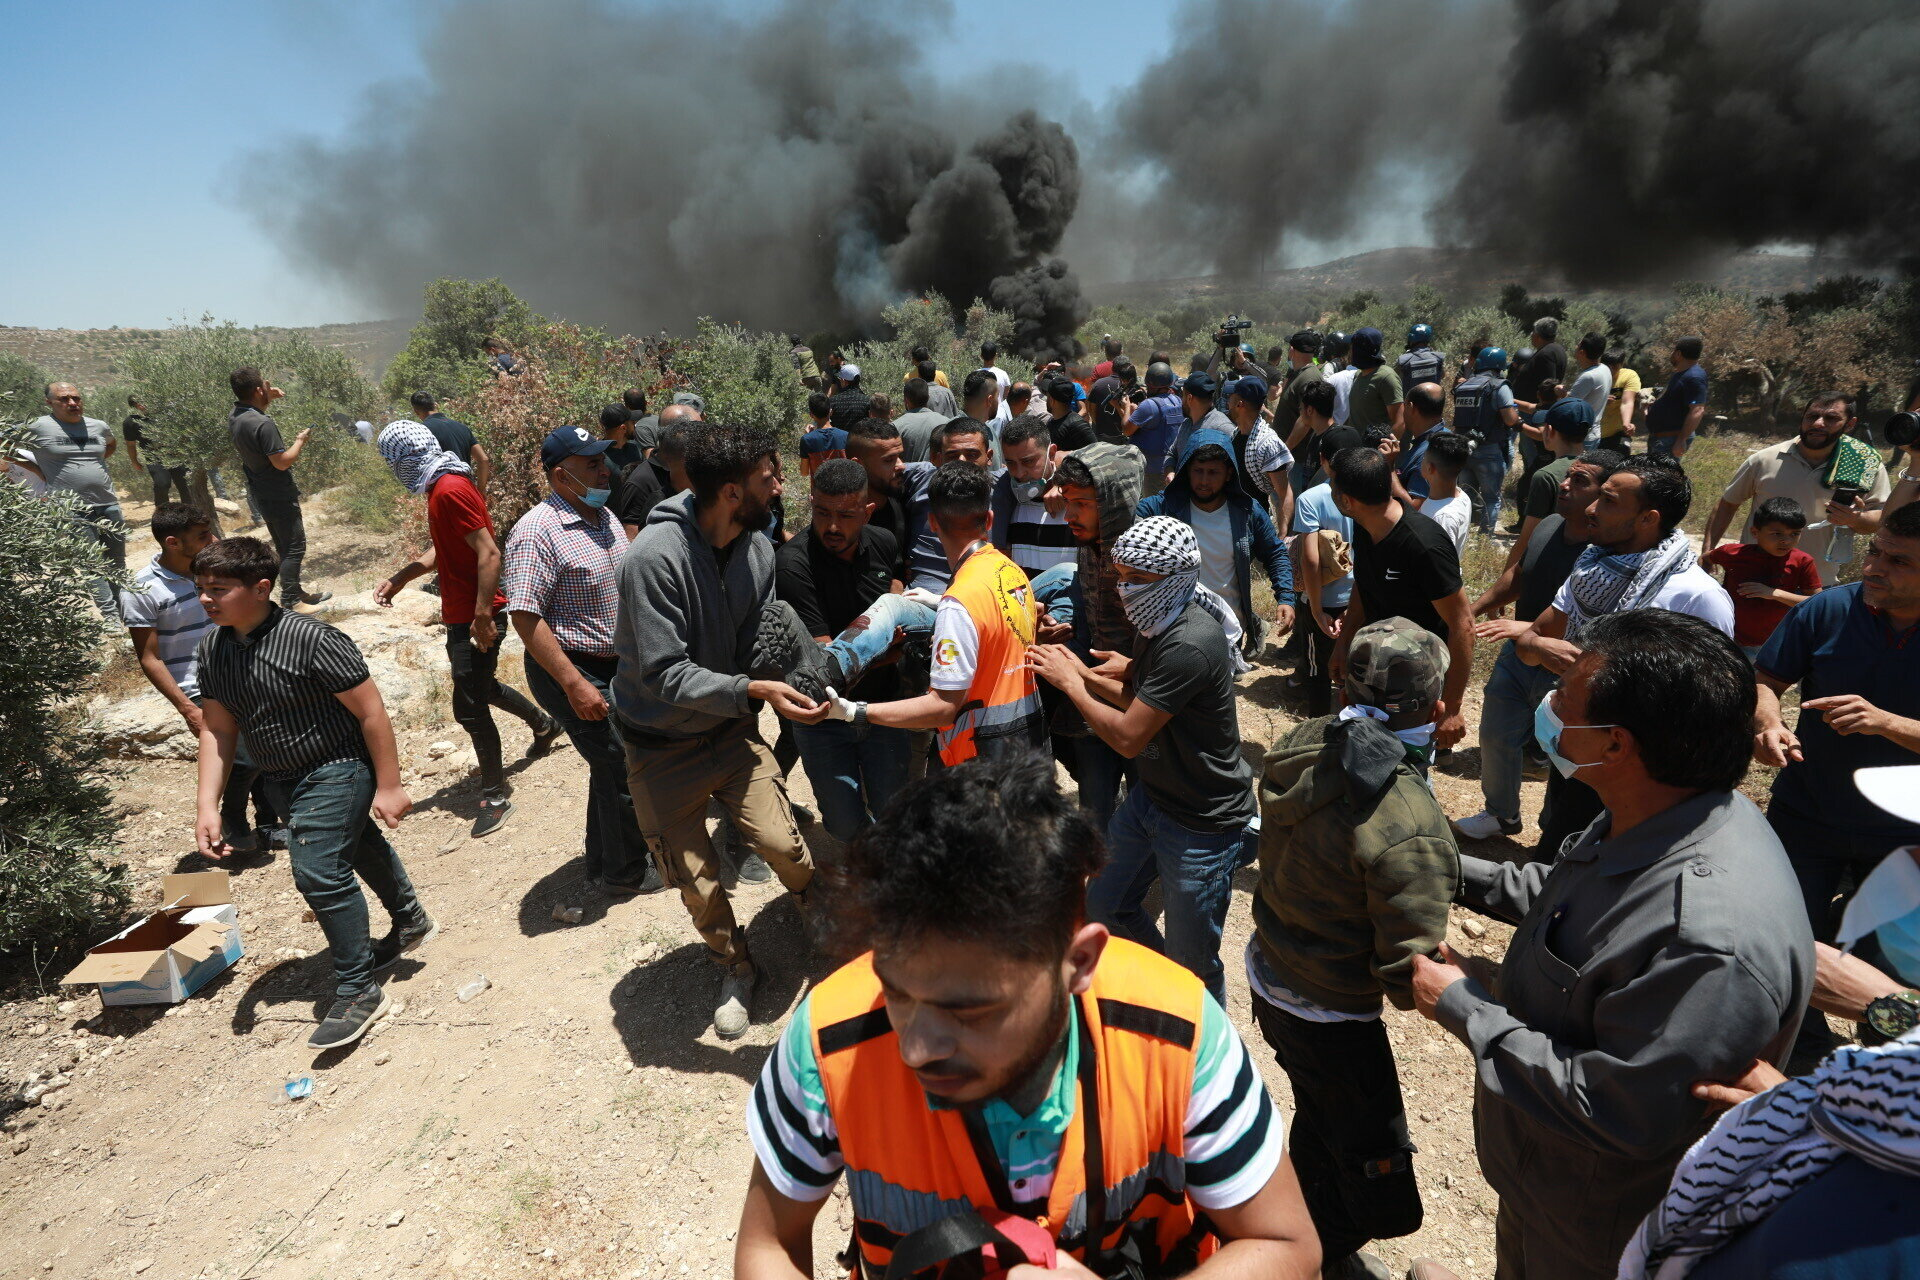 Palestinians' protest against Jewish settlements in West Bank